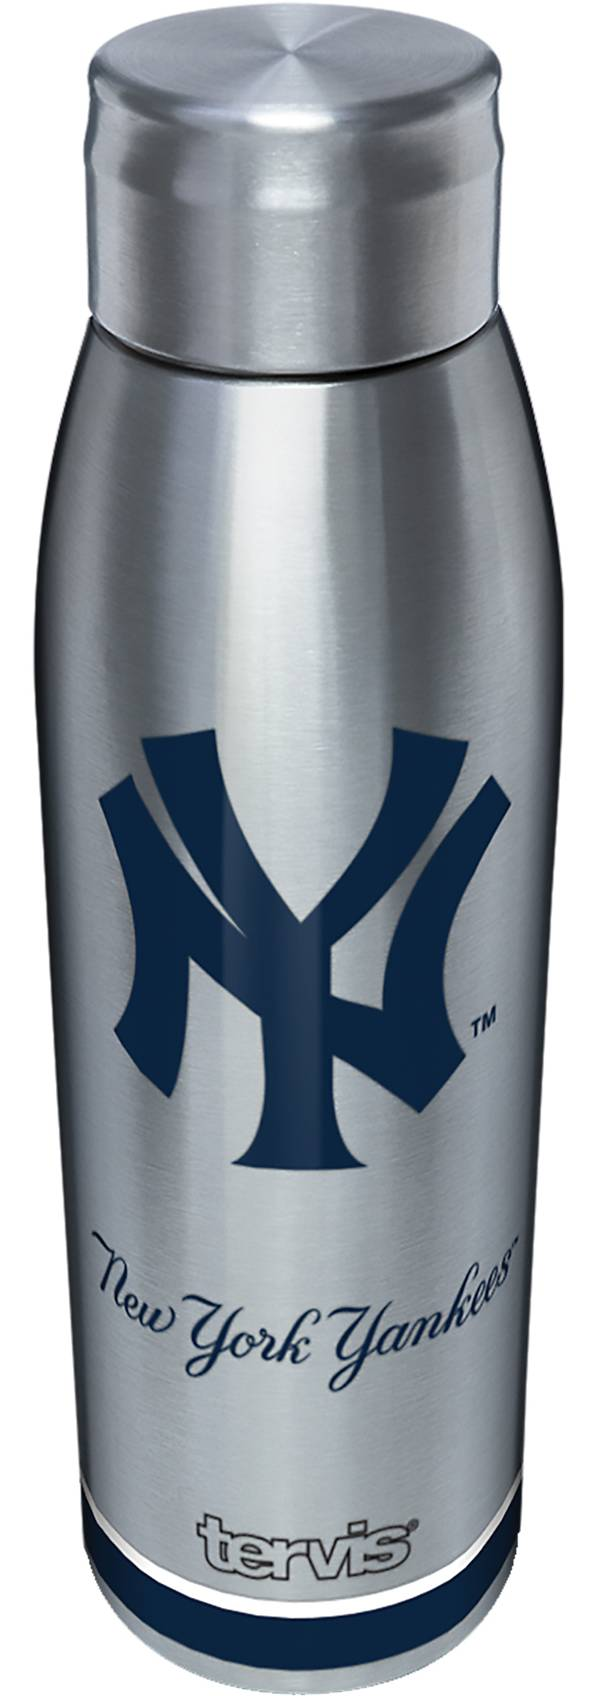 Tervis New York Yankees 17oz. Water Bottle product image